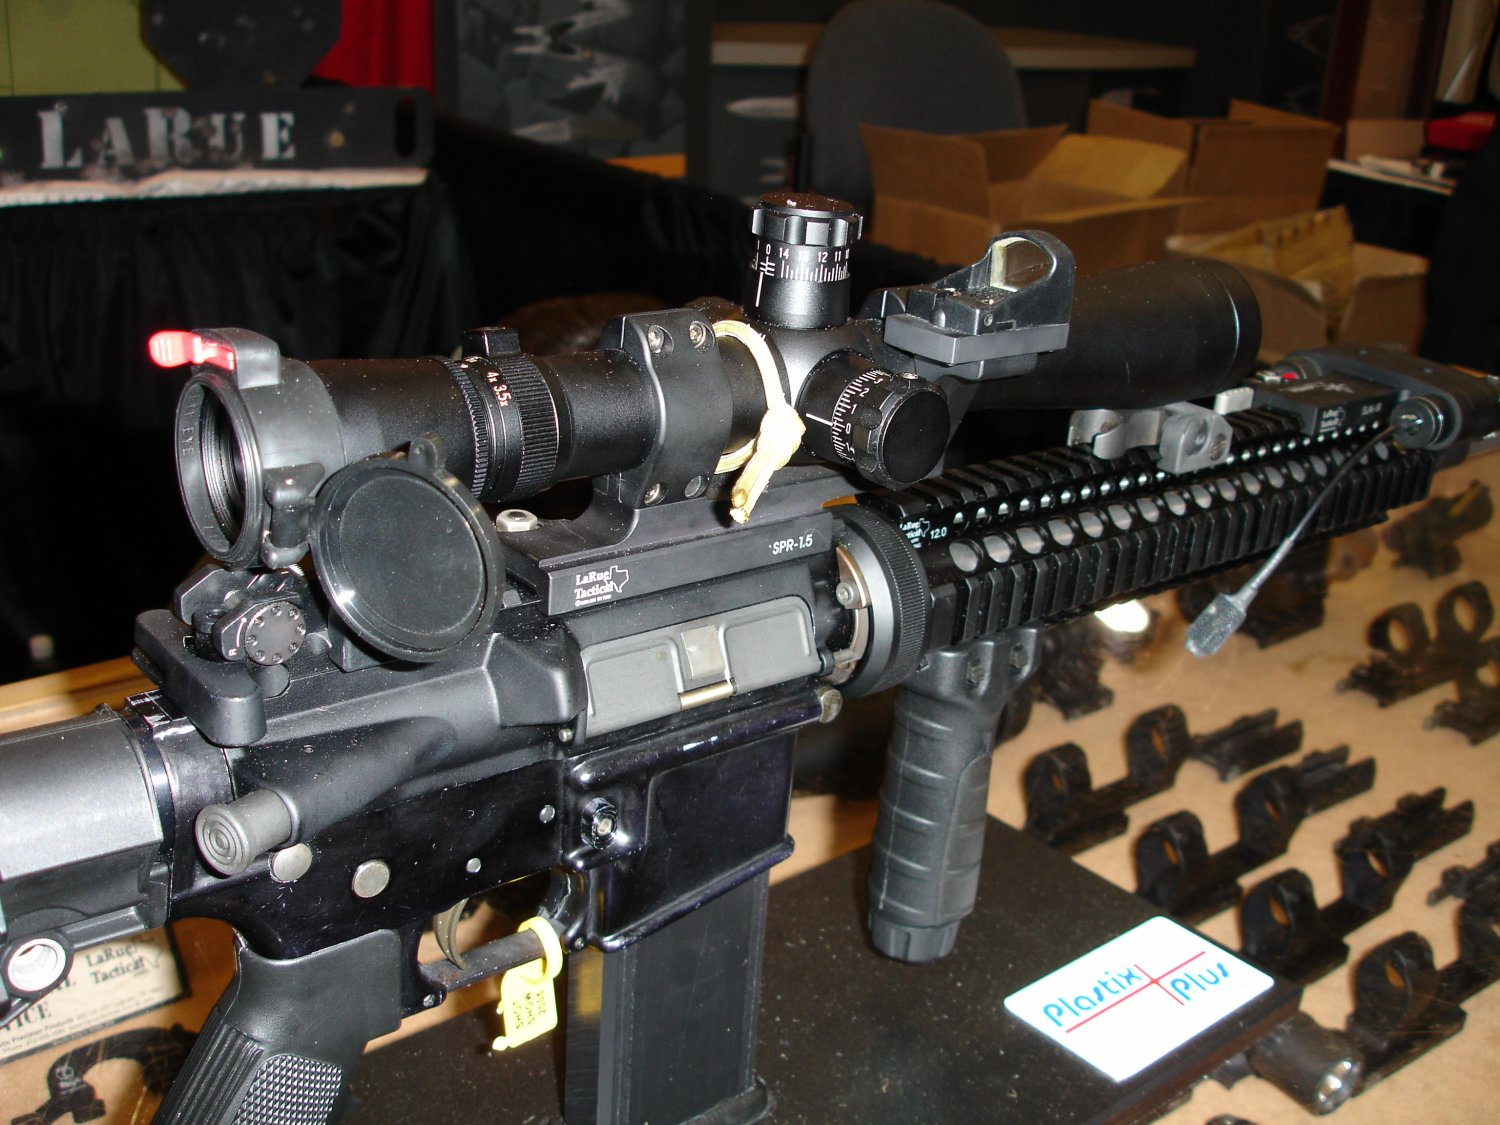 LarueTacticalScope OffsetCQBSight%28JPoint%29Mount 1 <!  :en  >LAMSA Weapons Systems Soldiers Laser Aimer/Illuminator for SPECOPS<!  :  >